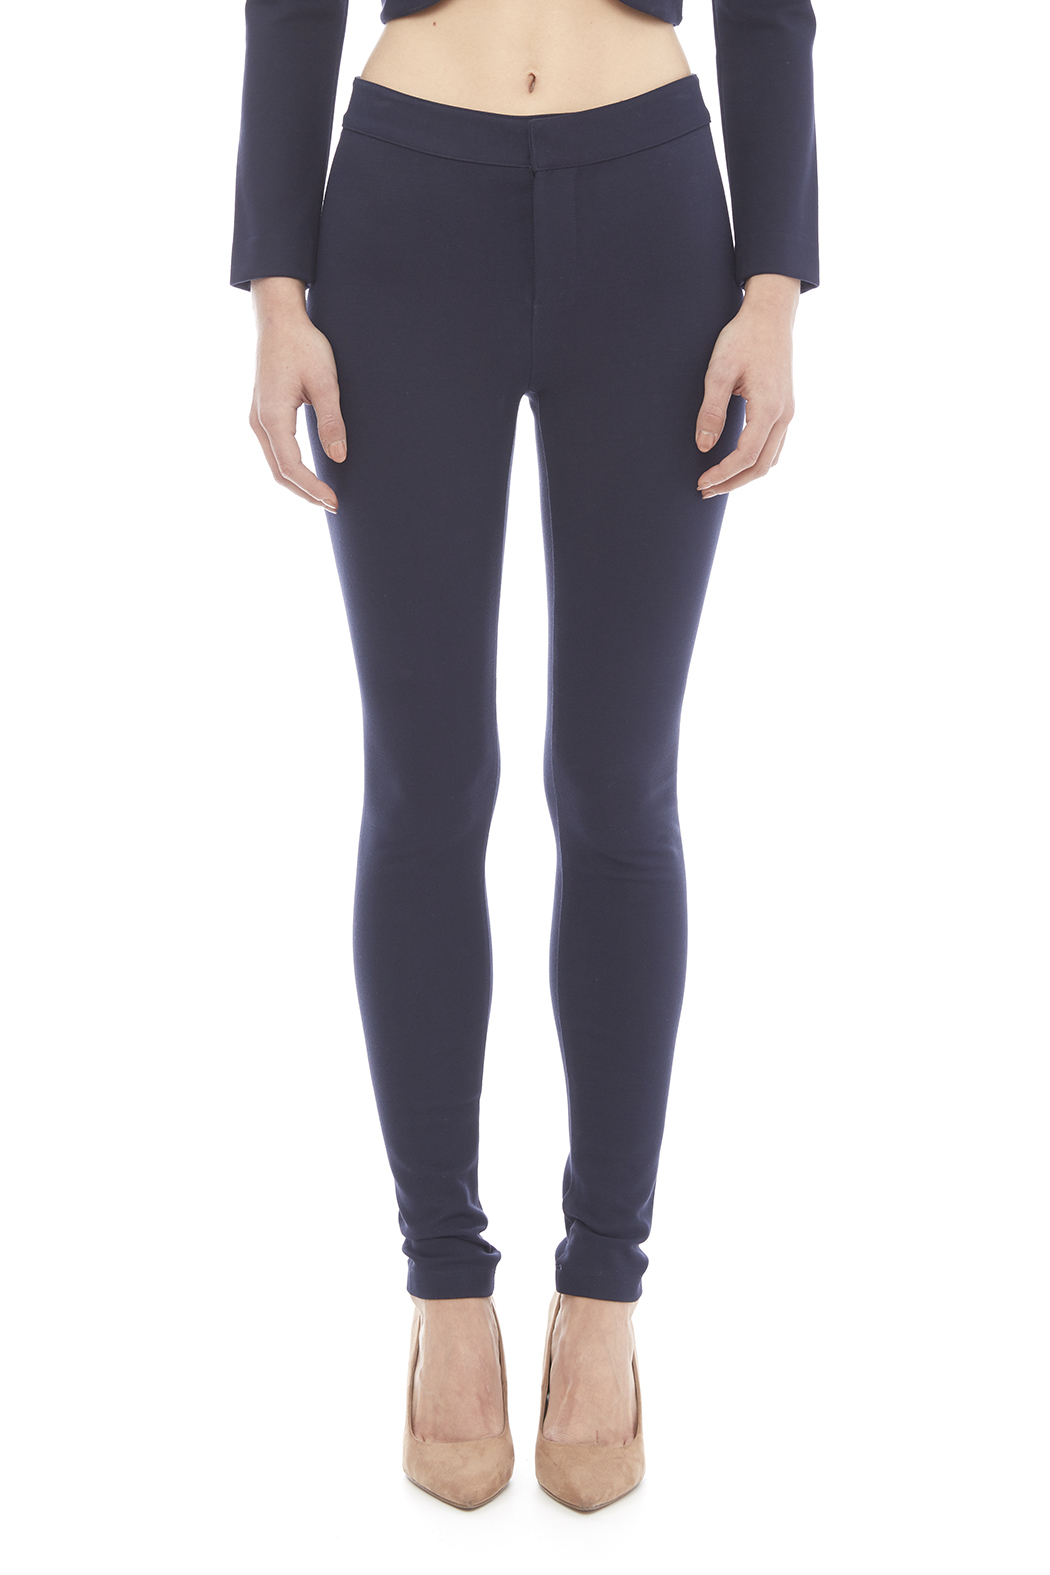 Blaque Label Kinit Navy Pants - Main Image